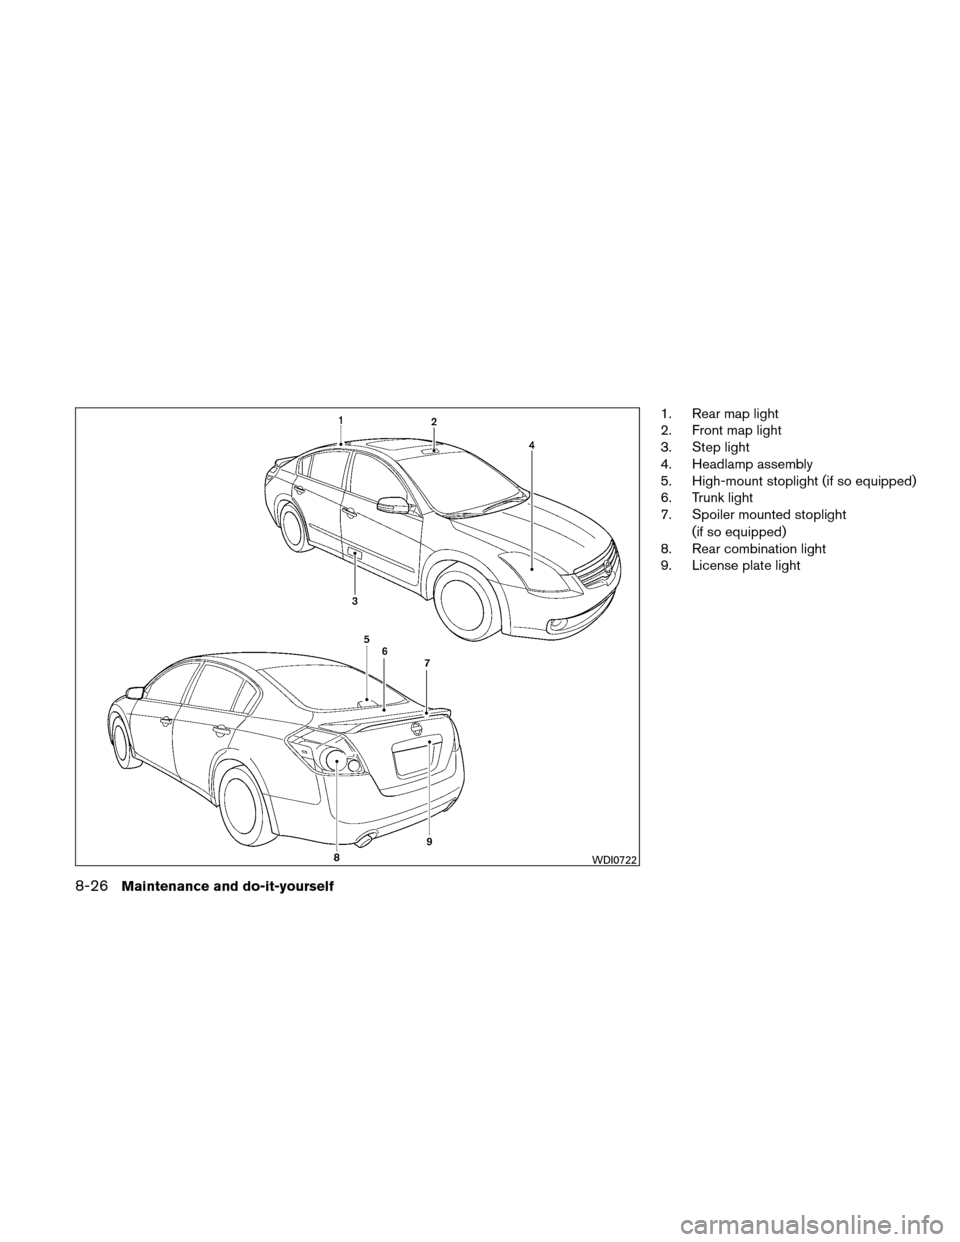 NISSAN ALTIMA HYBRID 2010 L32A / 4.G Owners Manual, Page 369